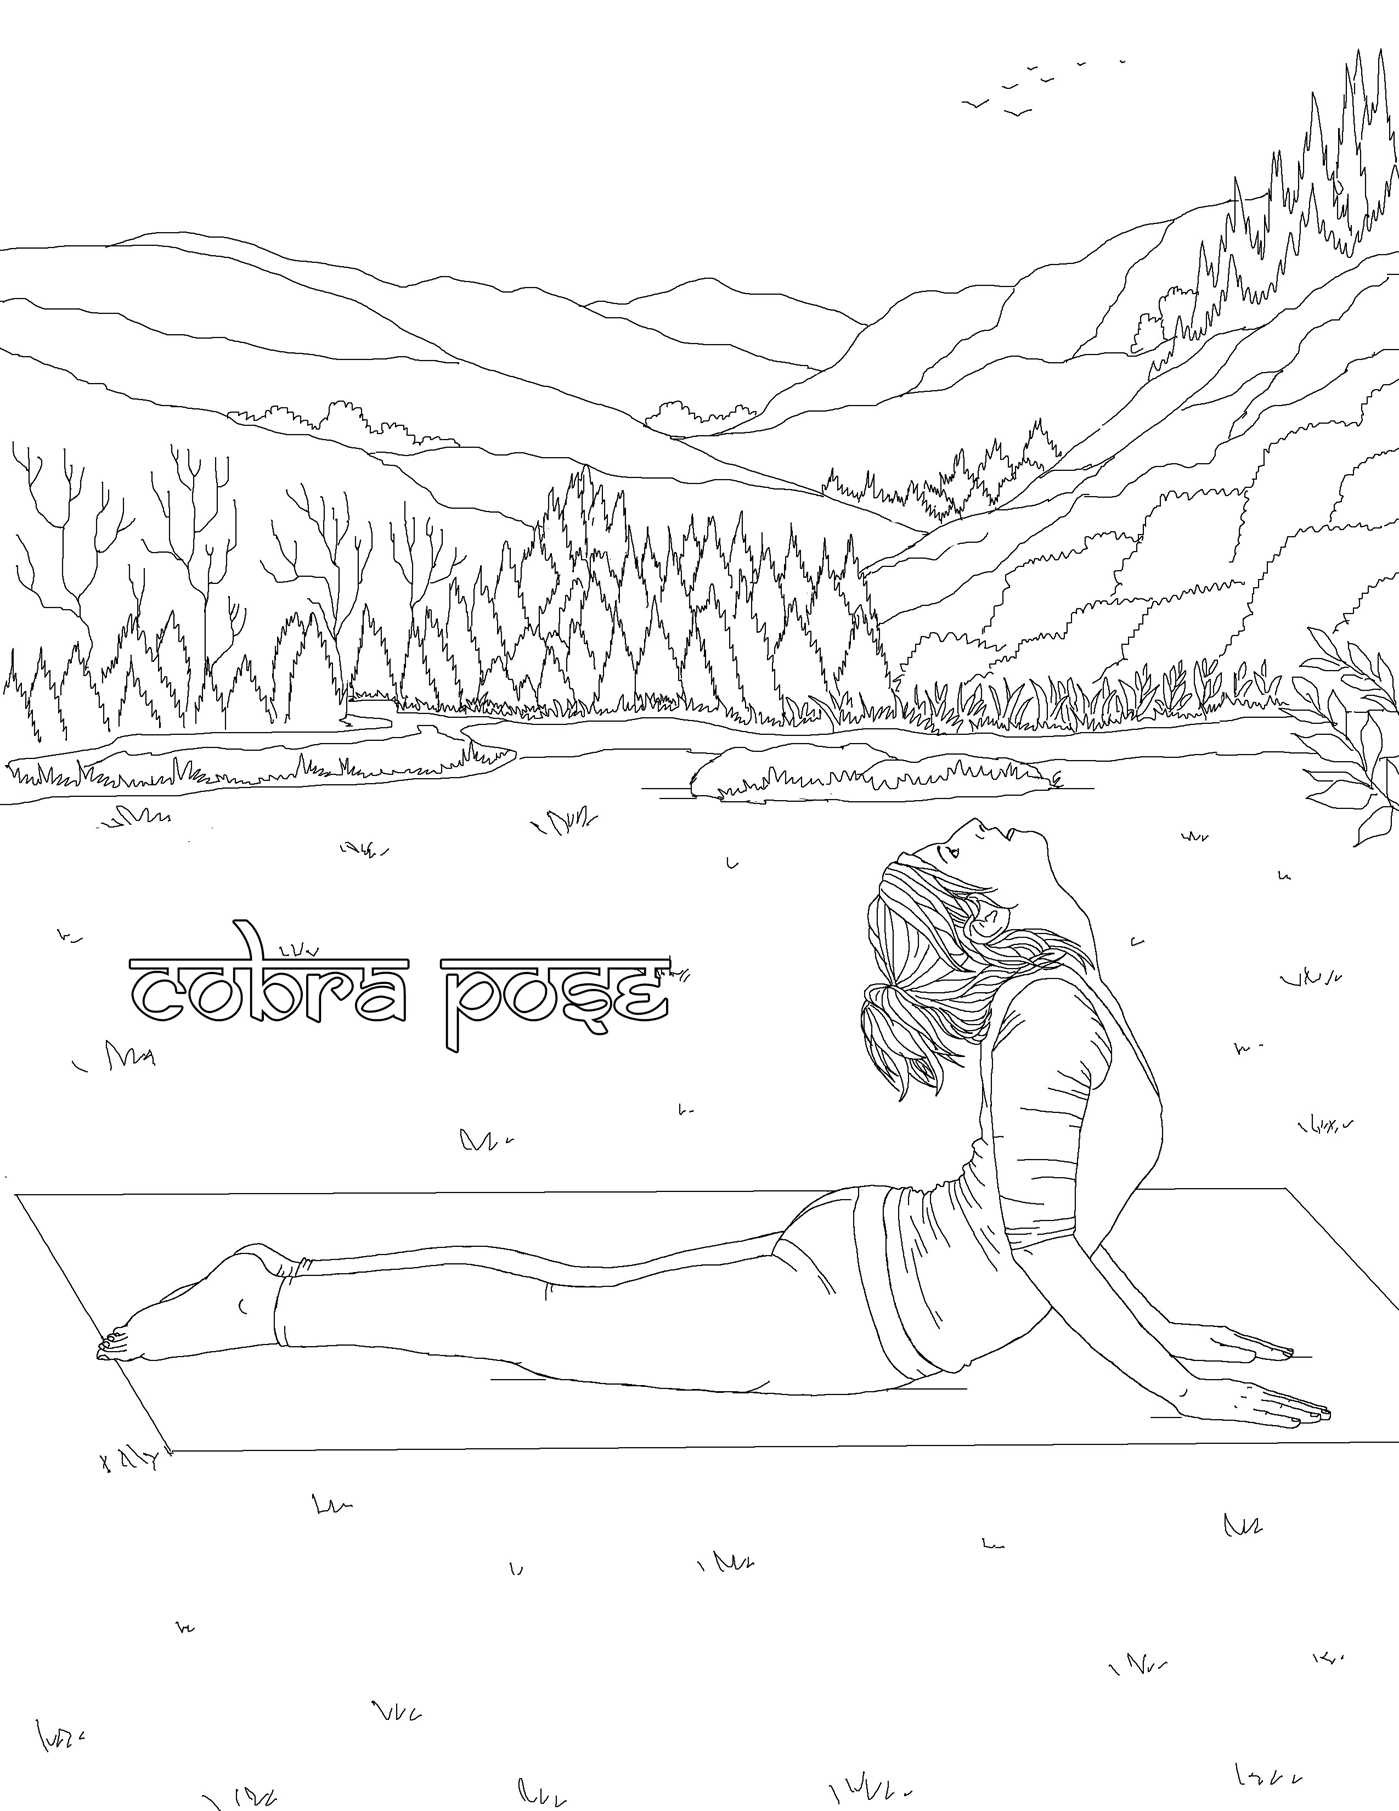 The Yoga Poses Adult Coloring Book